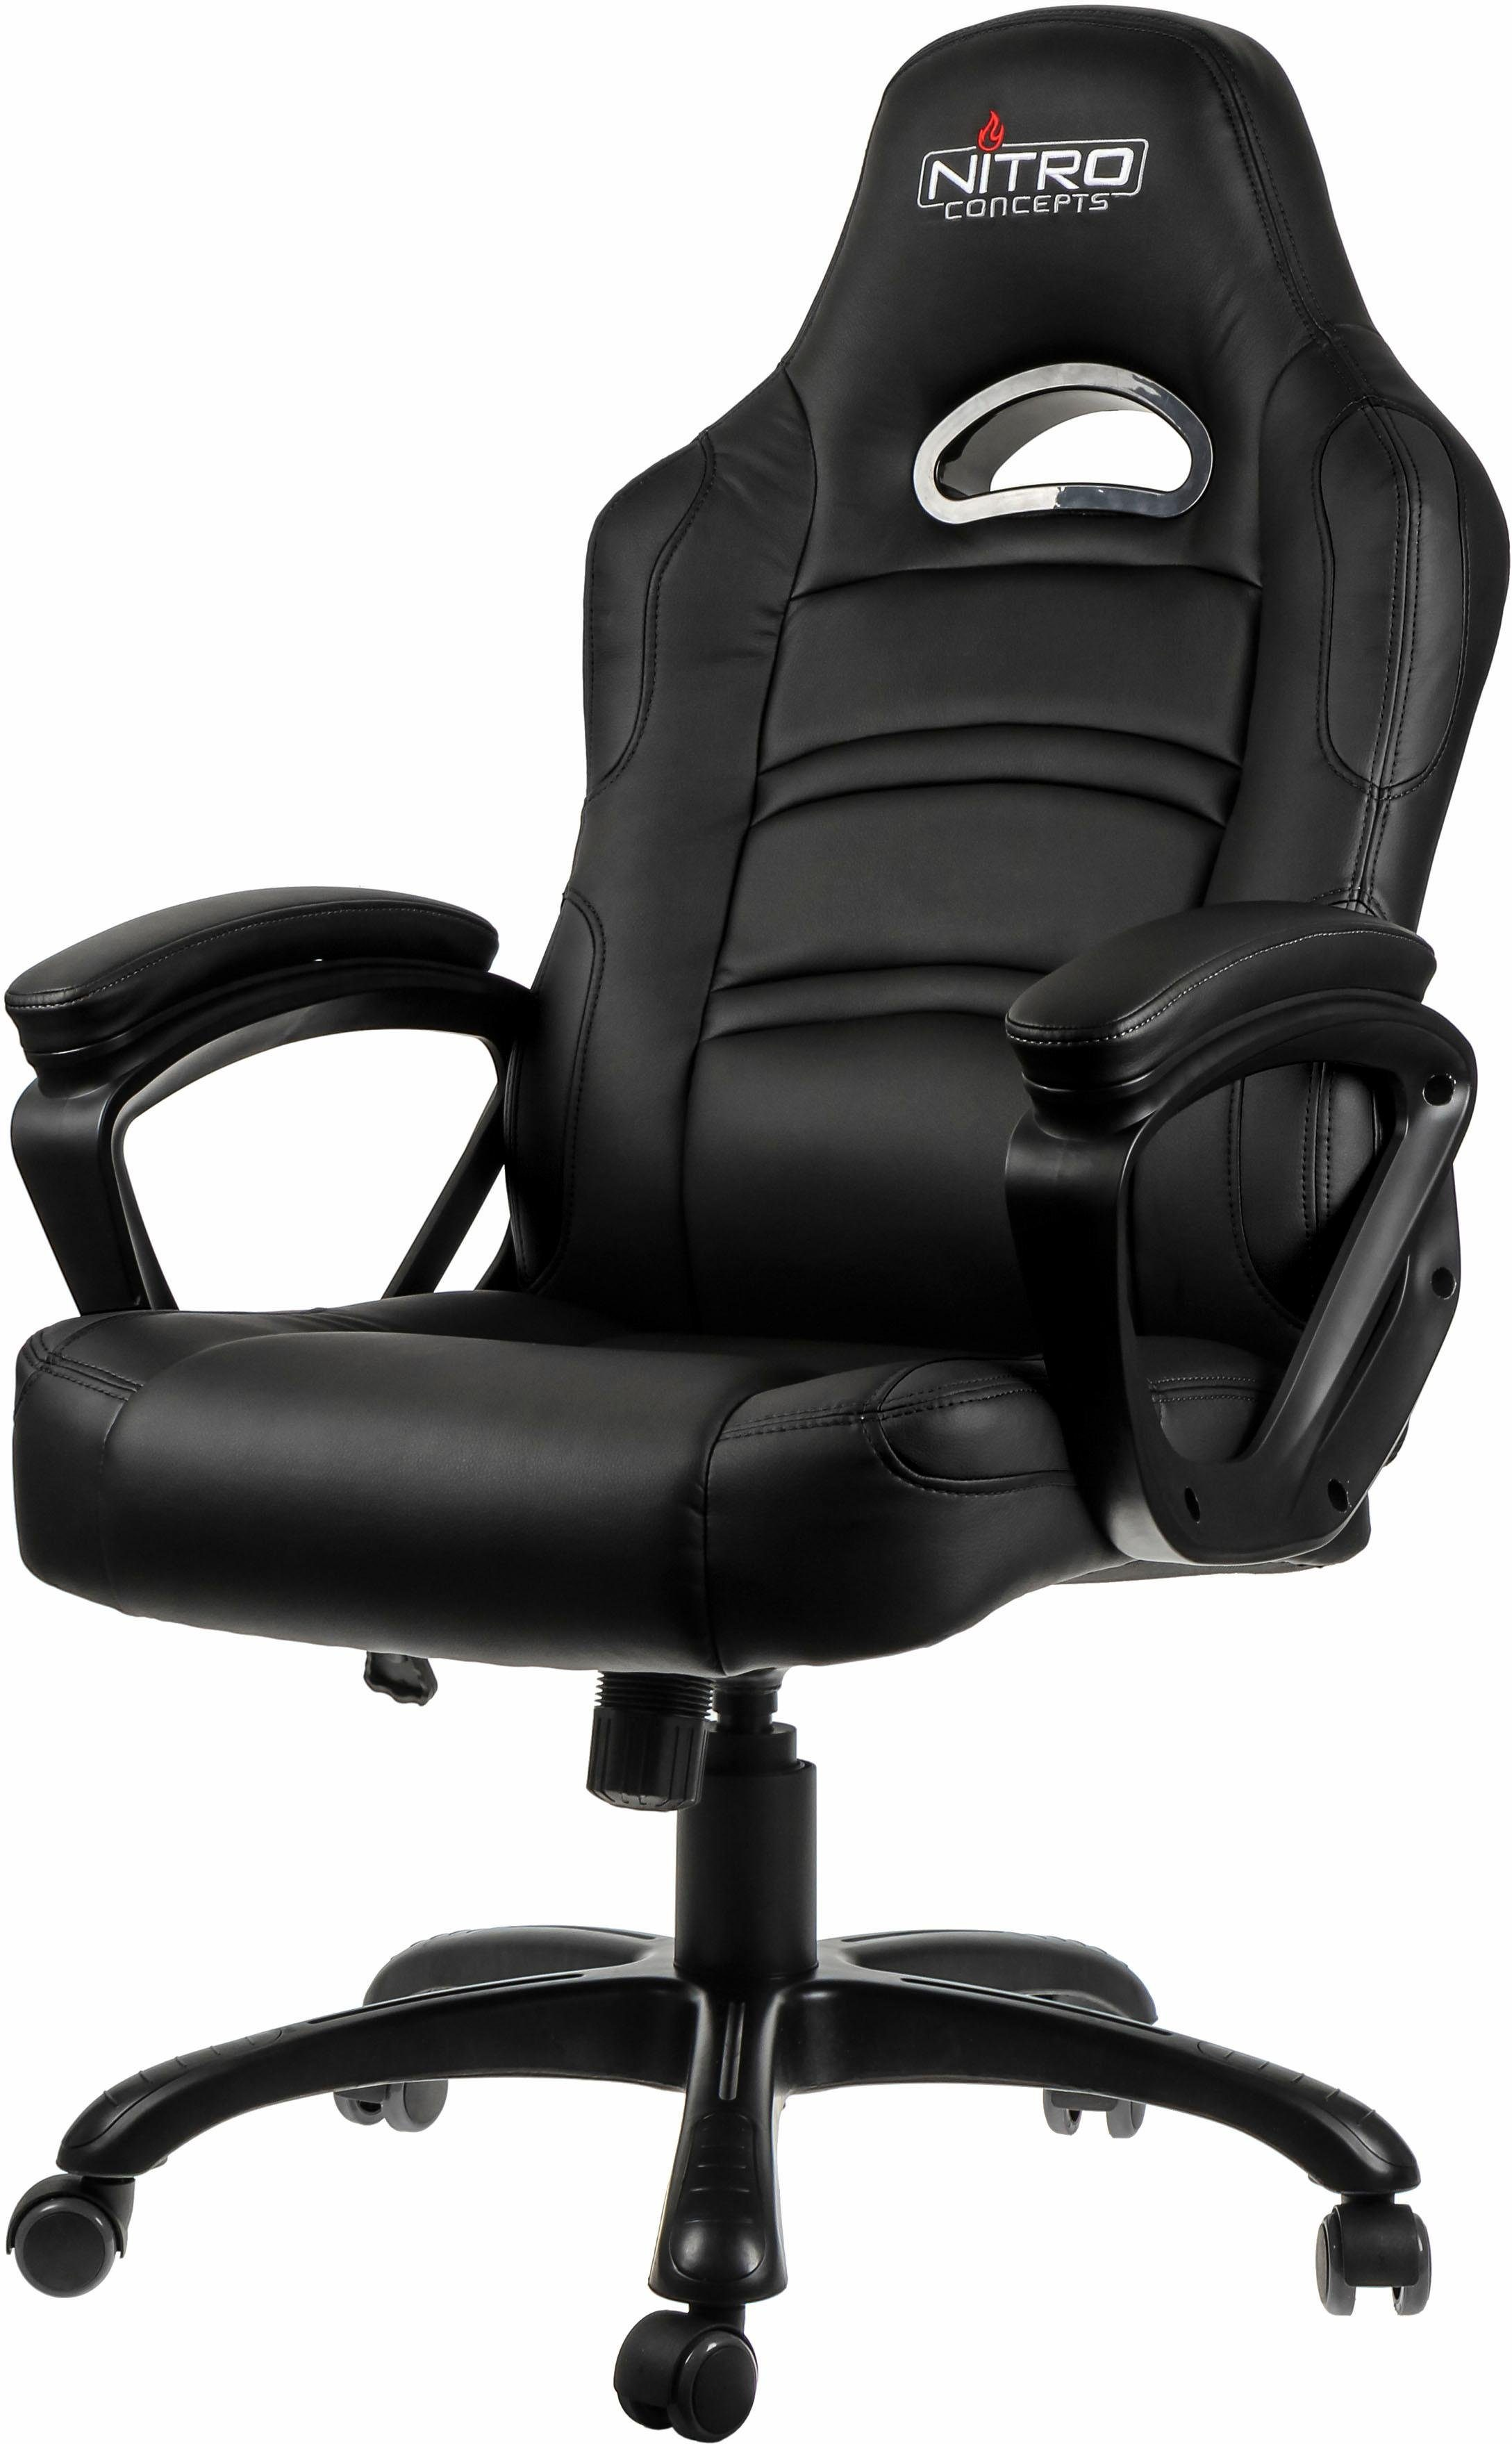 Fauteille Gamer Nitro Chairs C80 Comfort Gaming Stoel